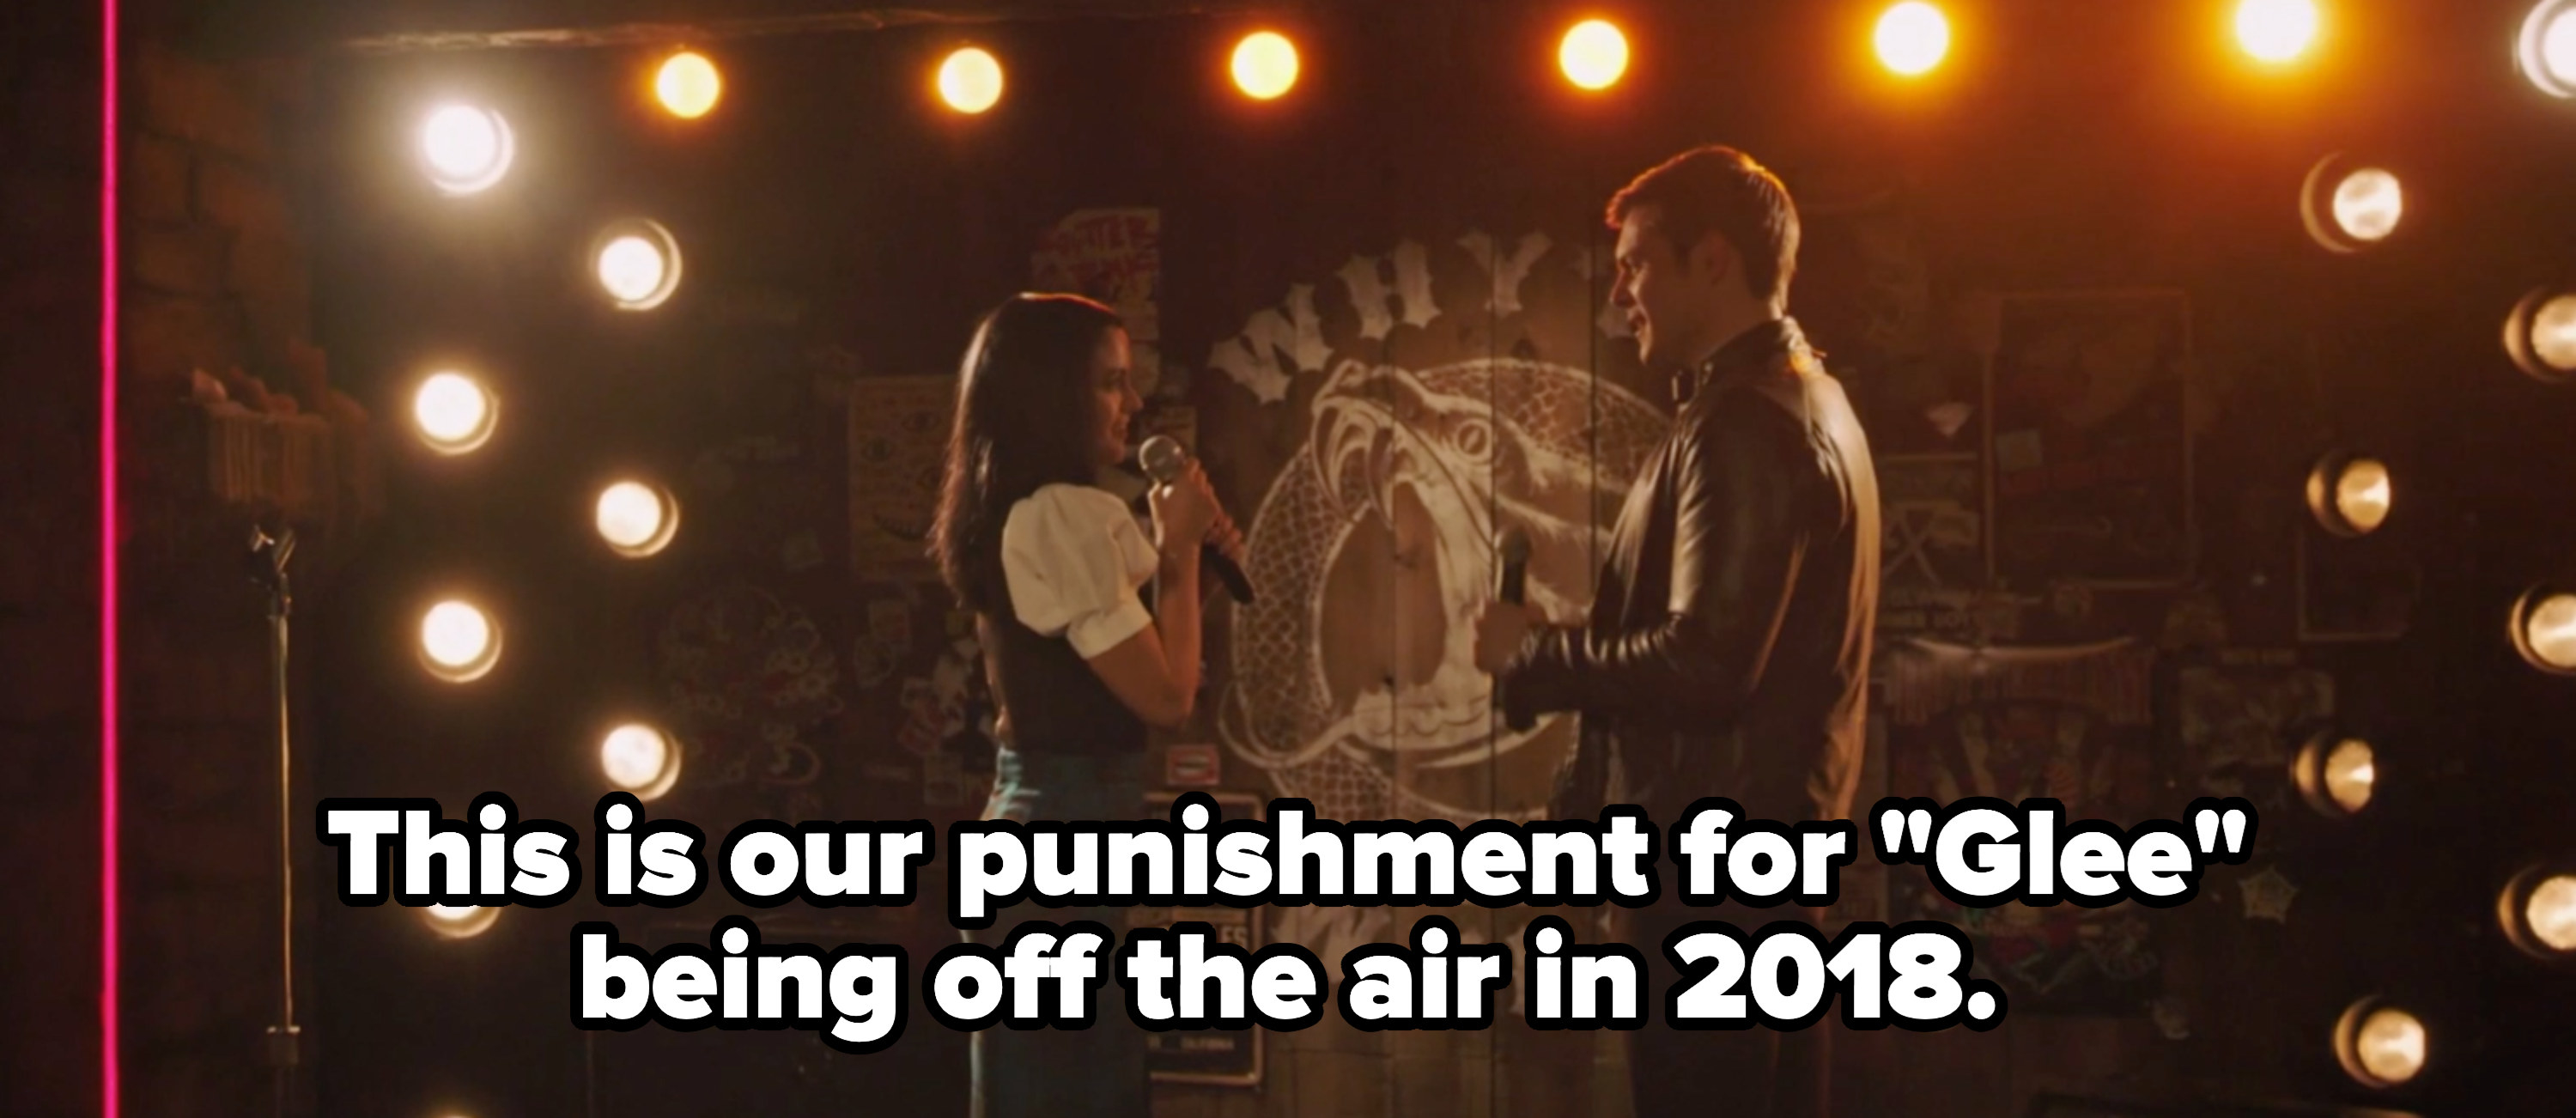 """Veronica and Chad singing with the caption """"this is our punishment for """"glee"""" being off the air in 2018"""""""